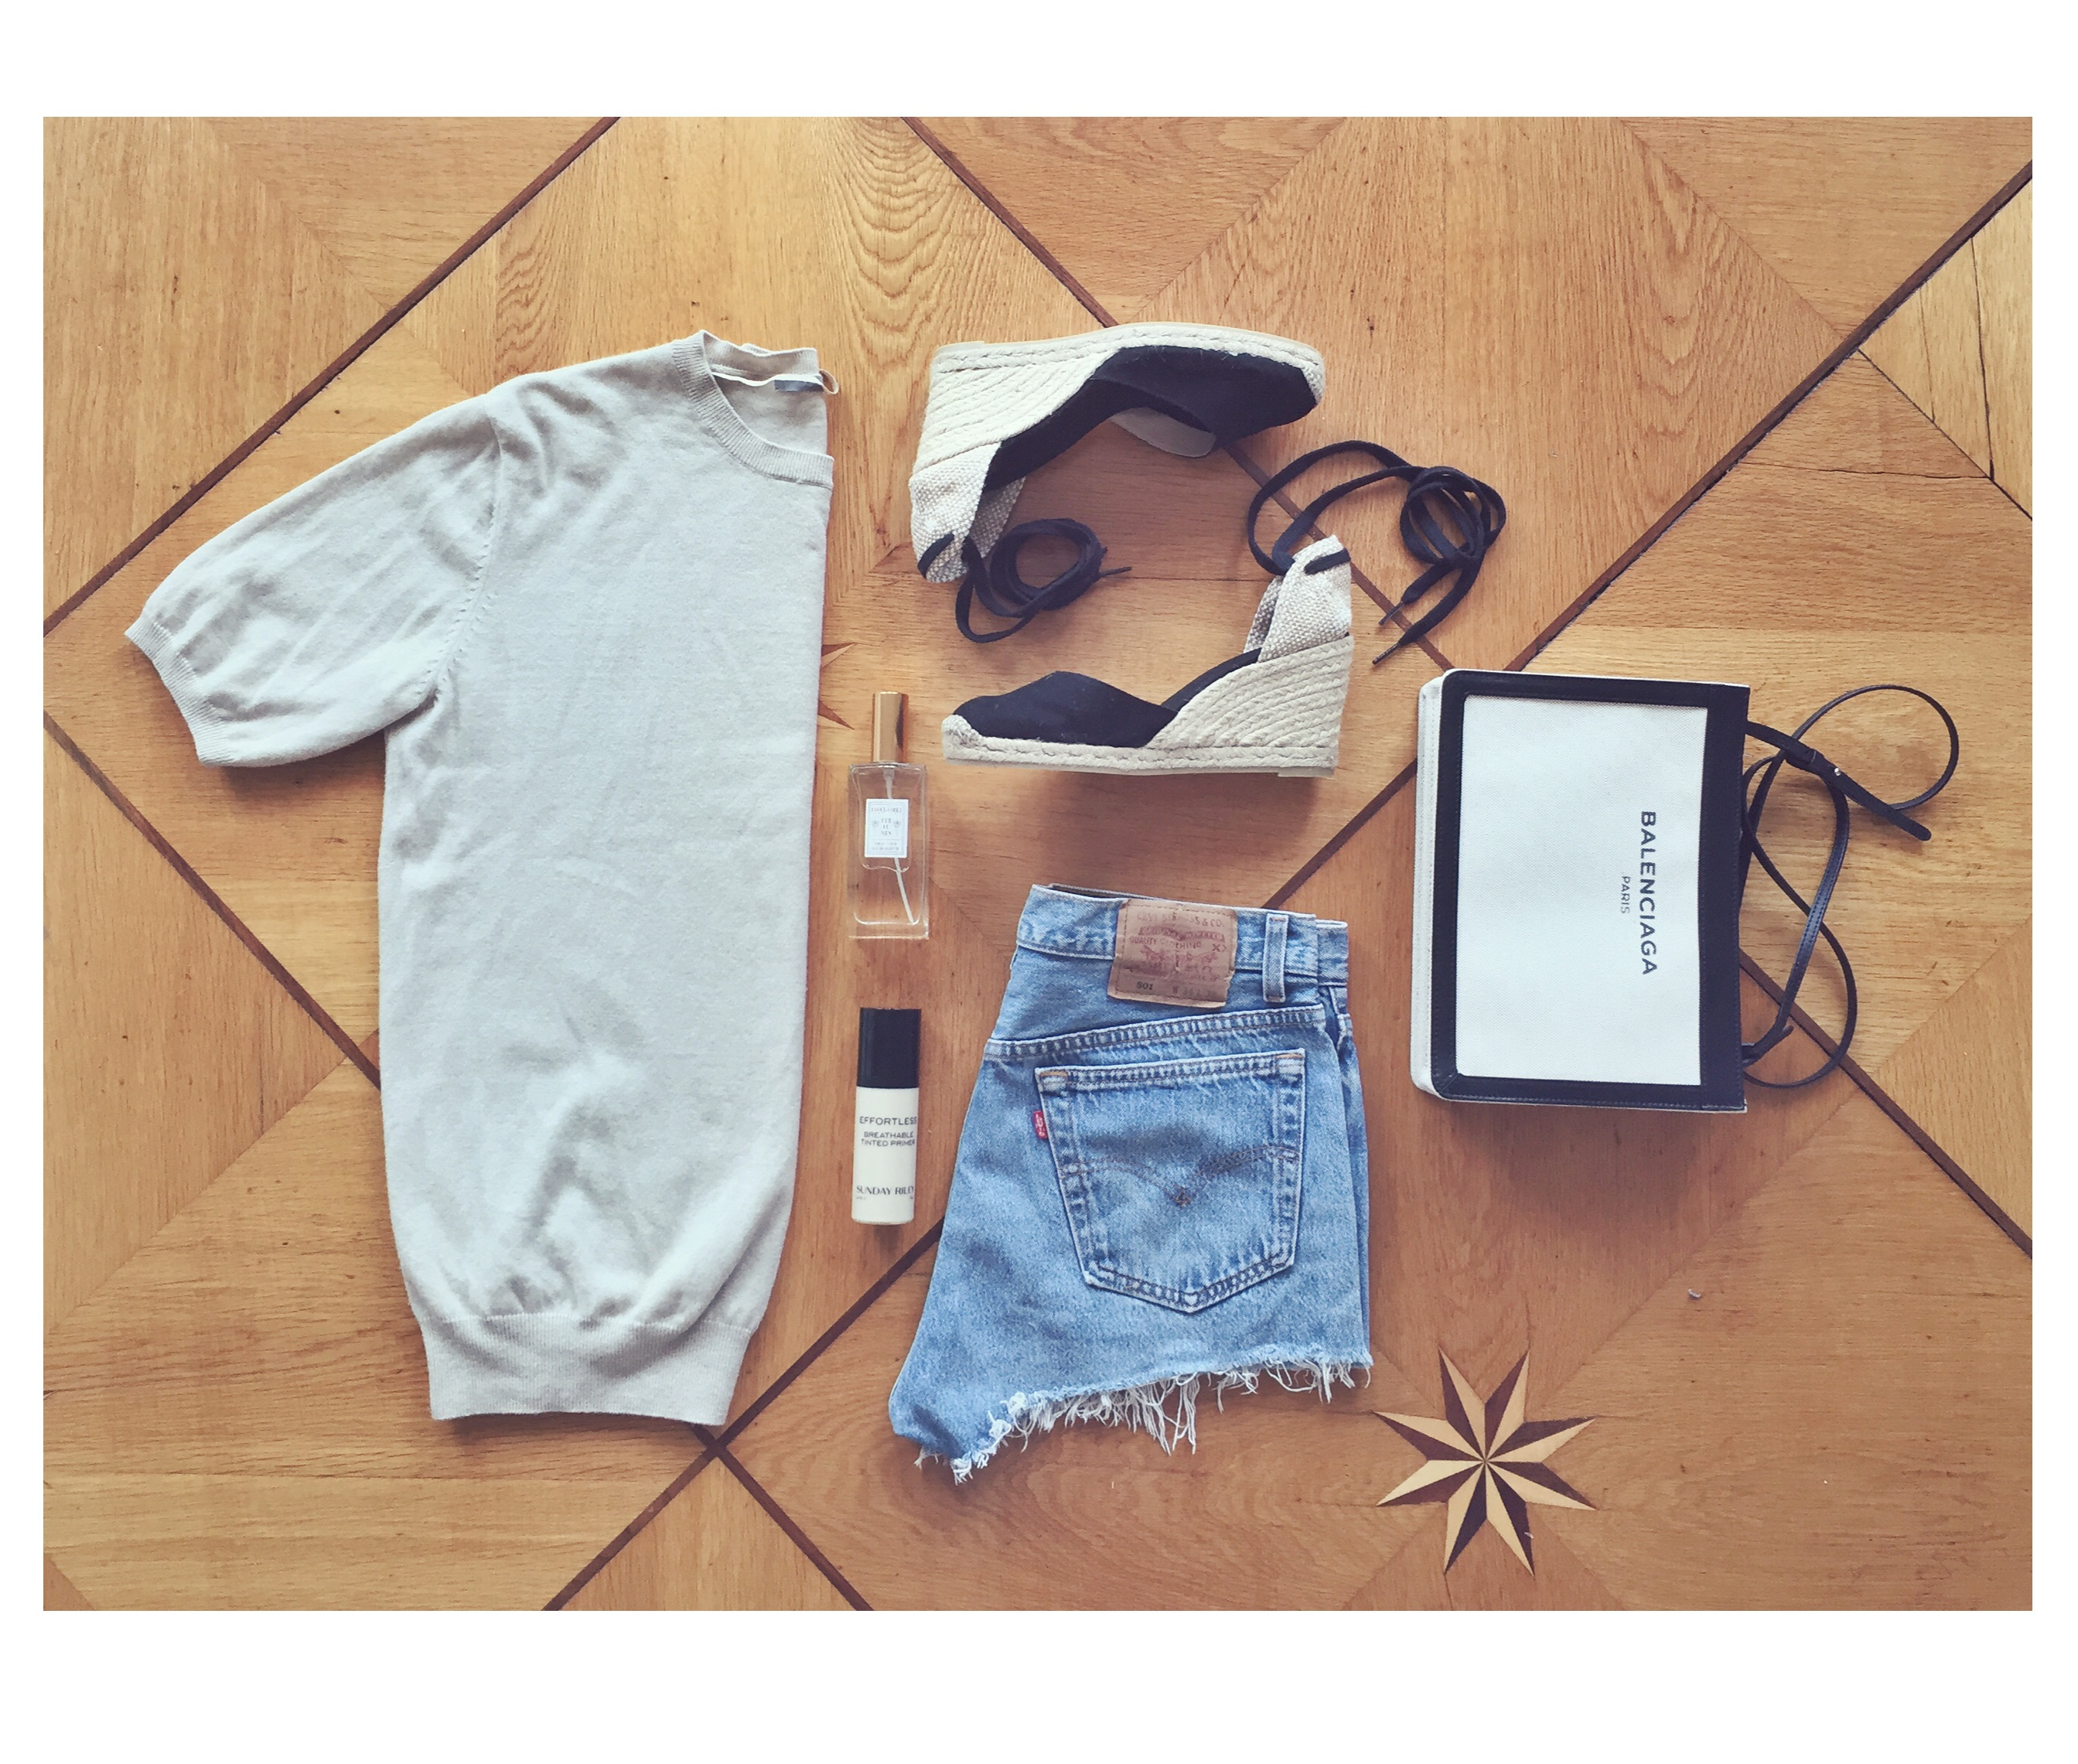 espadrilles_castaner_canvas_bag_balenciaga_levis_shorts_new